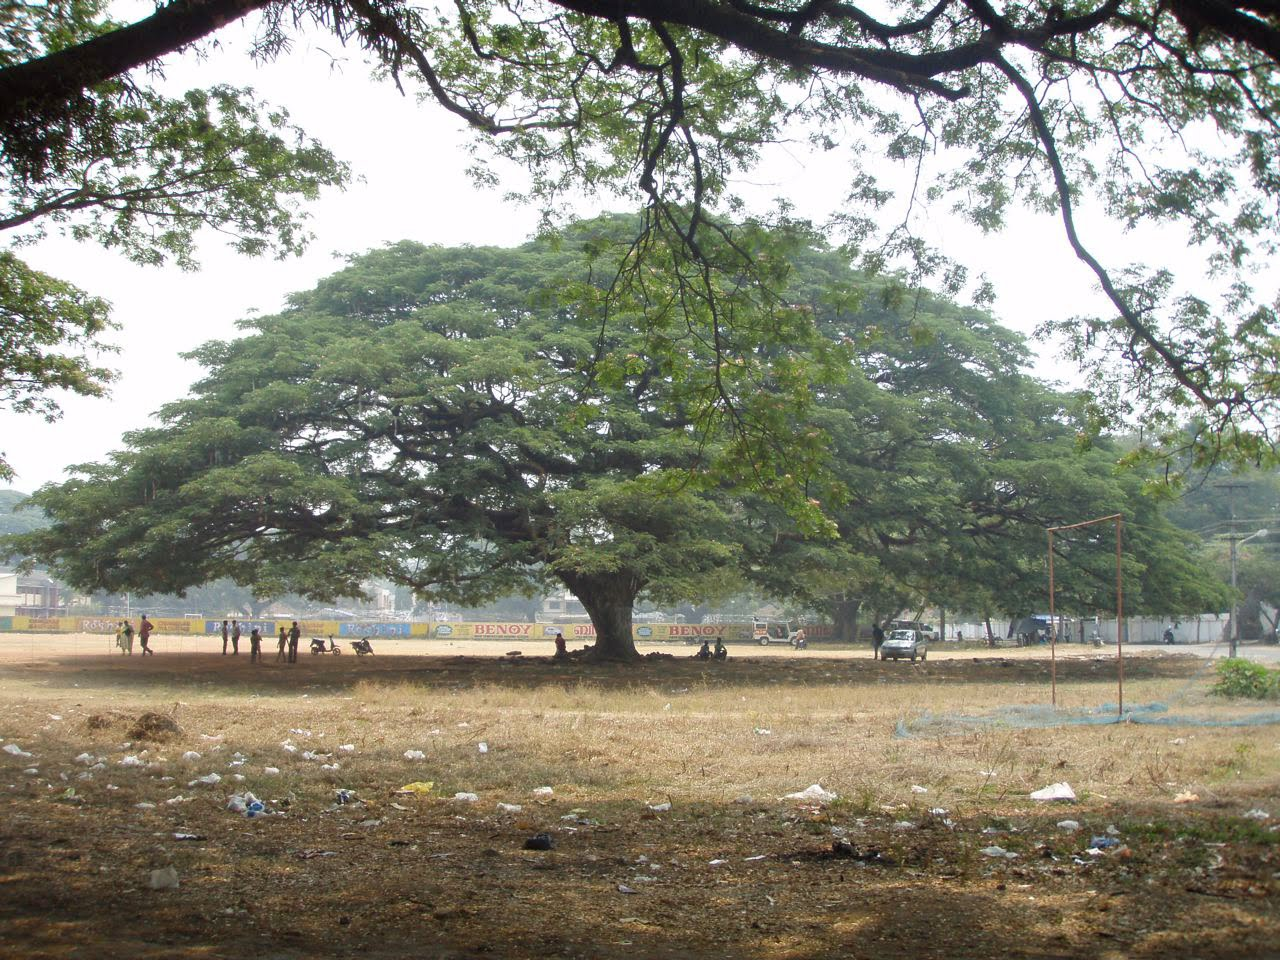 Lloyd s blog huge shade tree in india for Best small shade trees